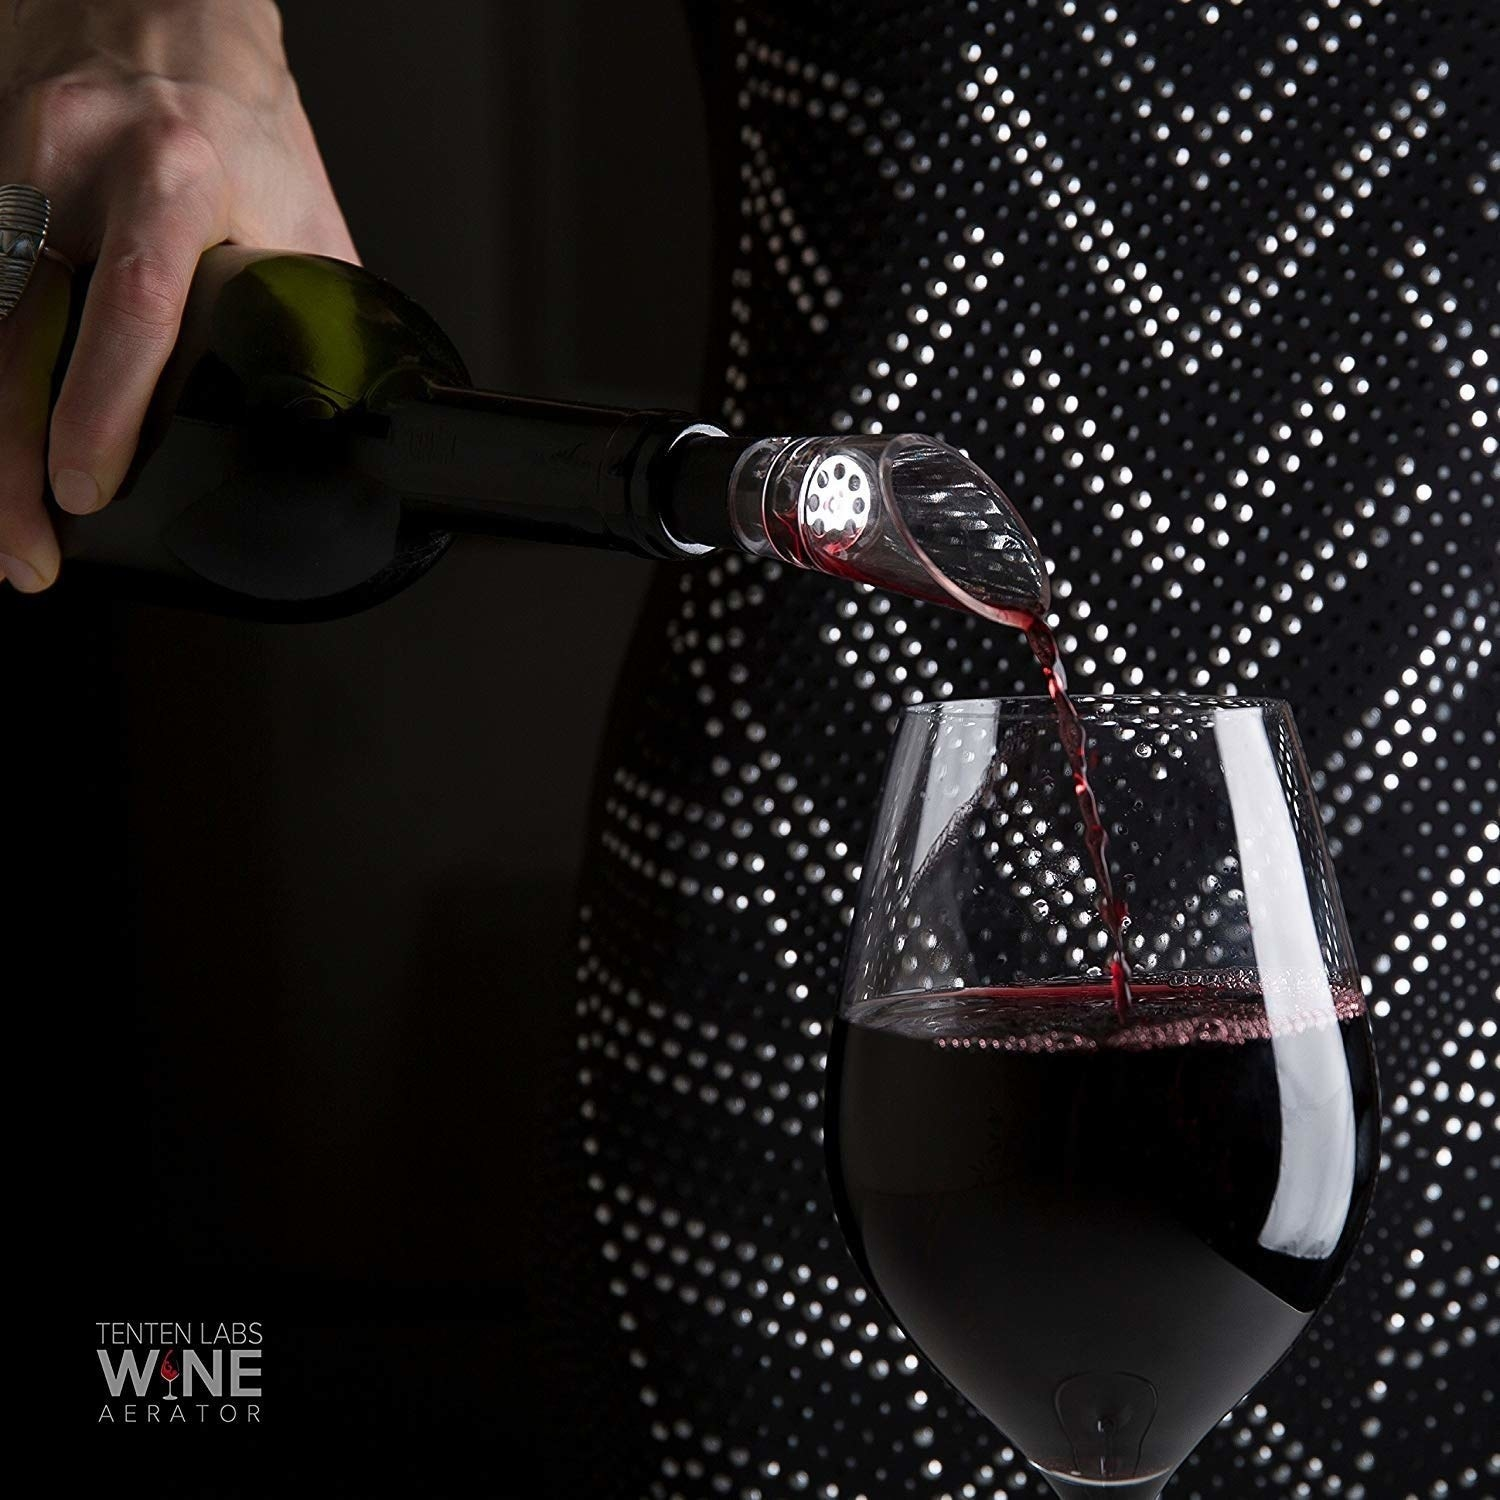 aerator in bottle spout pouring wine